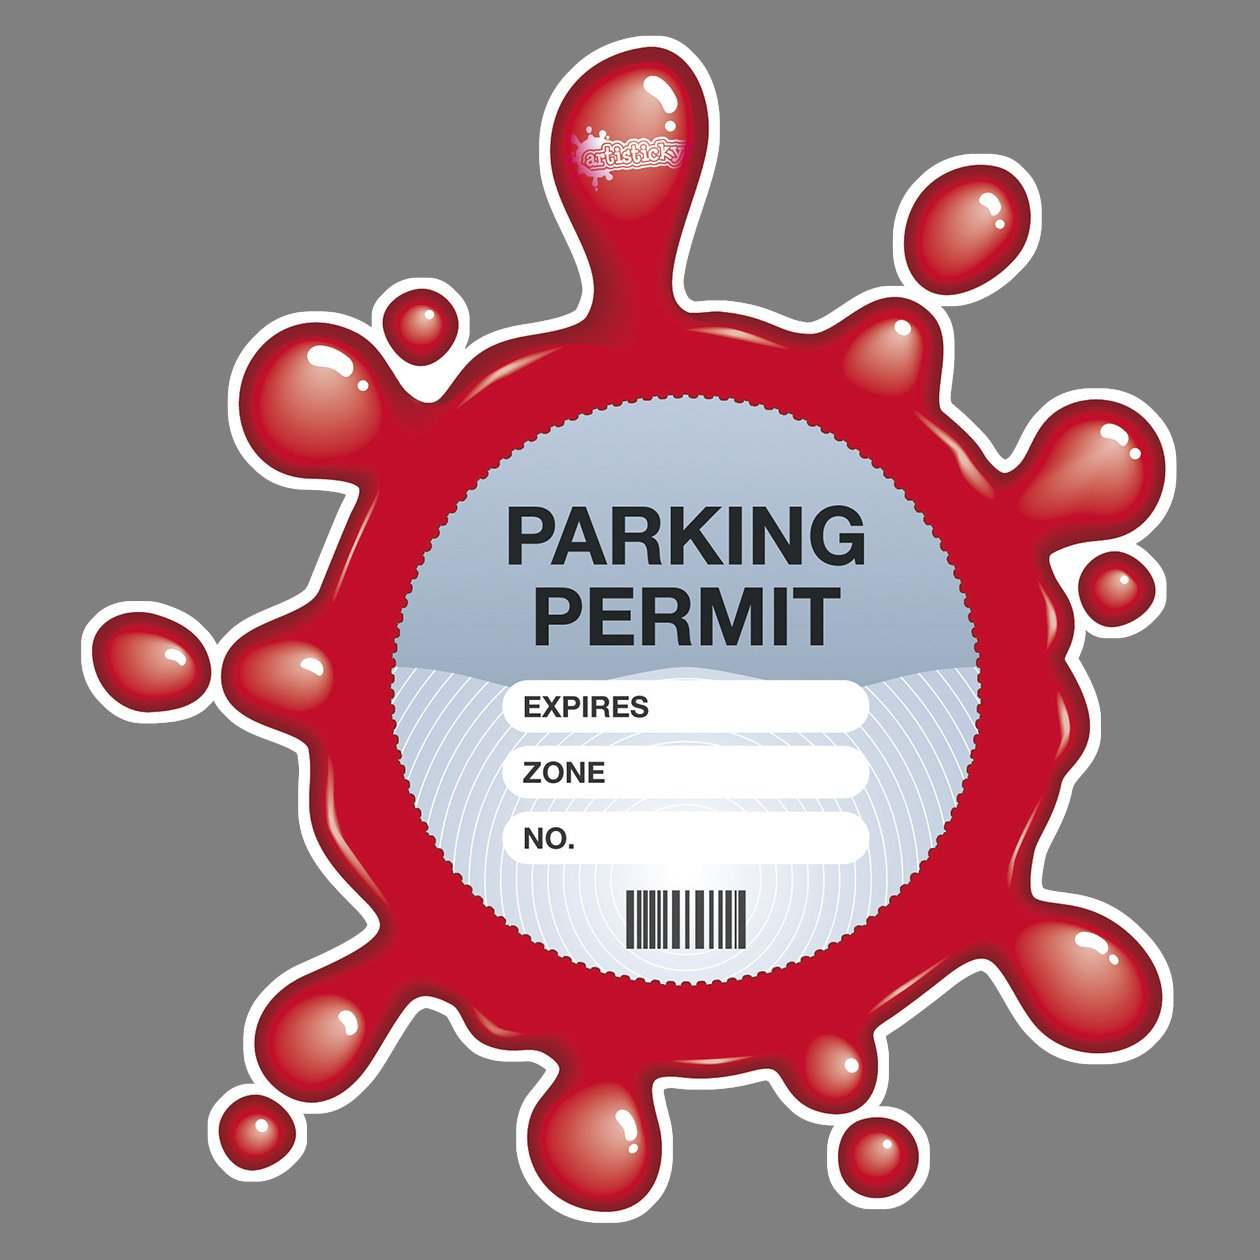 PARKING PERMIT Holder Skin RED SPLAT - FREE POSTAGE Artisticky AS-0003